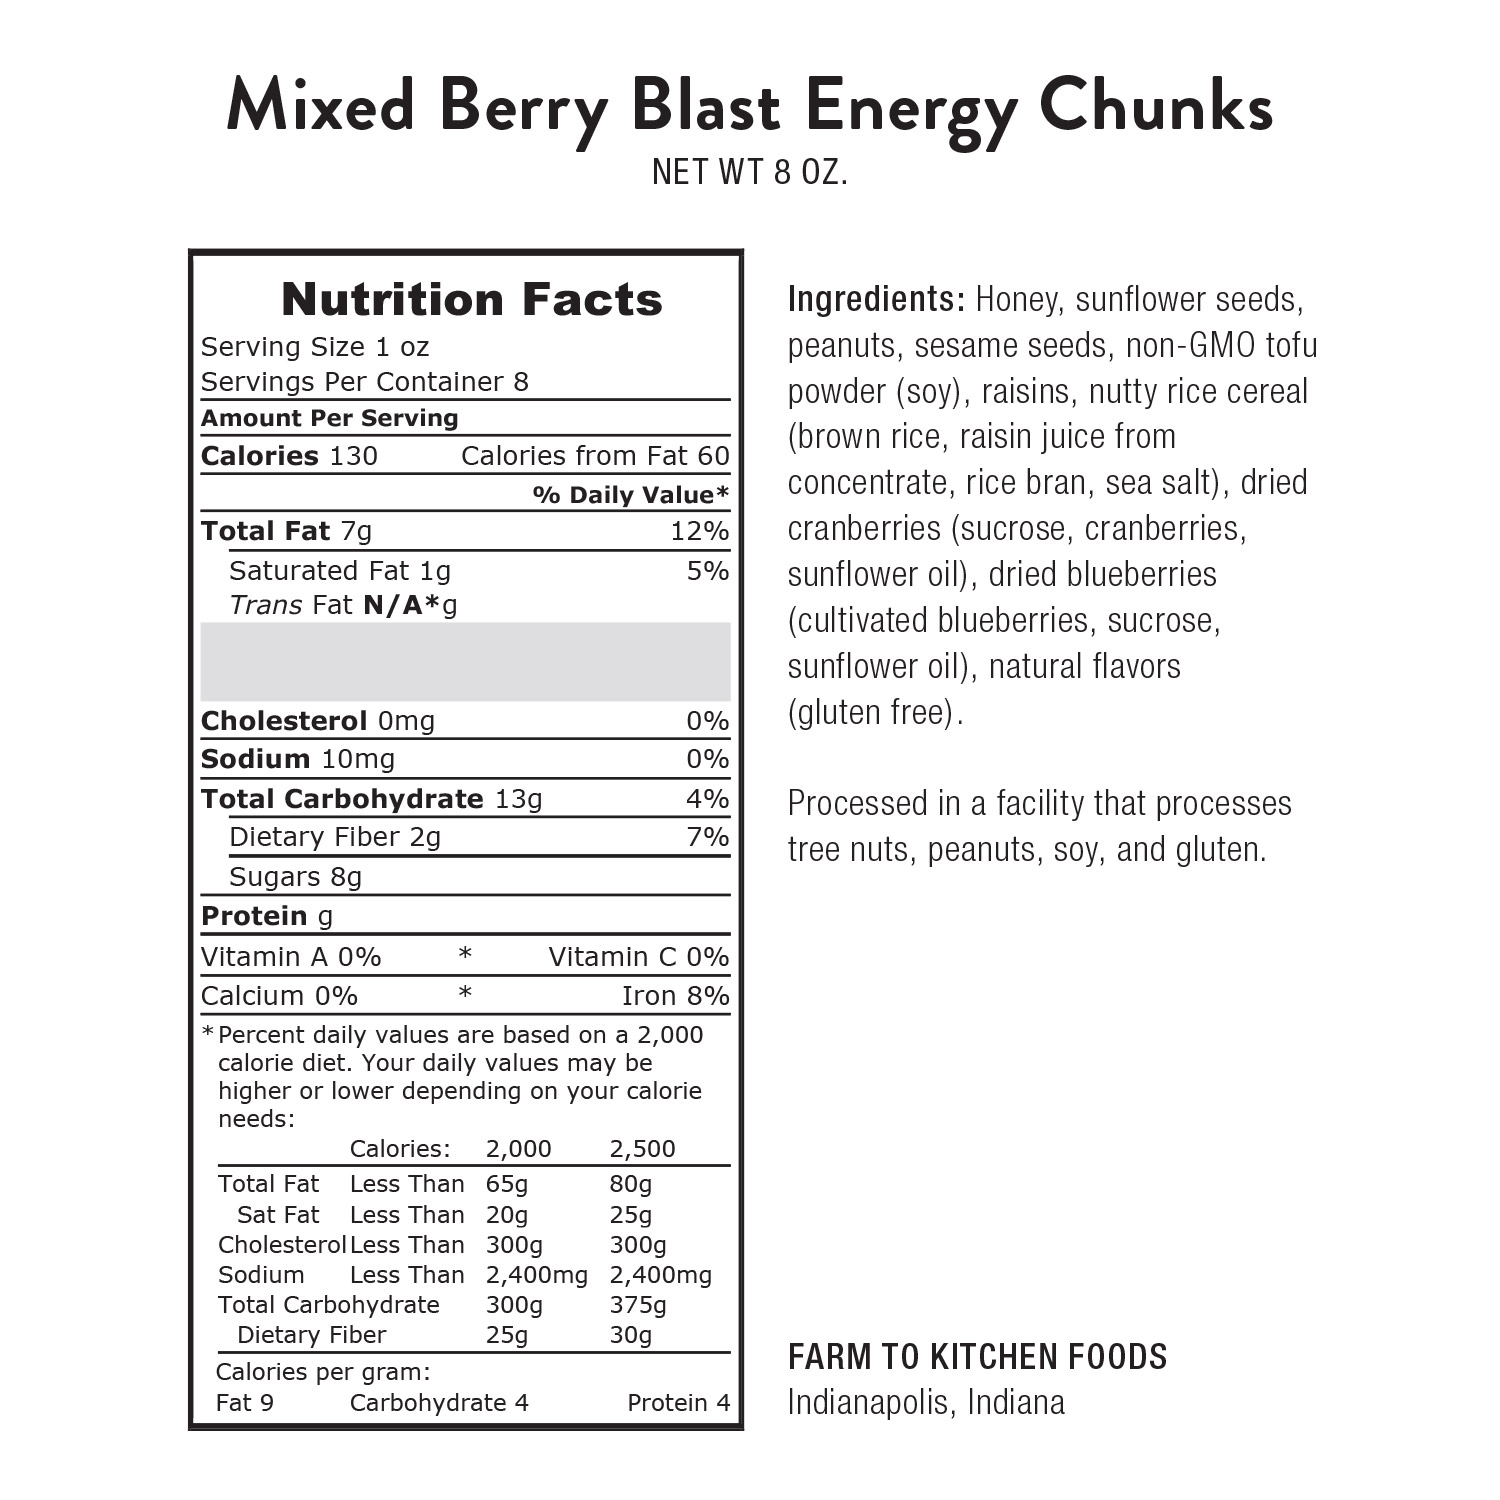 Energy Chunks, Mixed Berry Blast